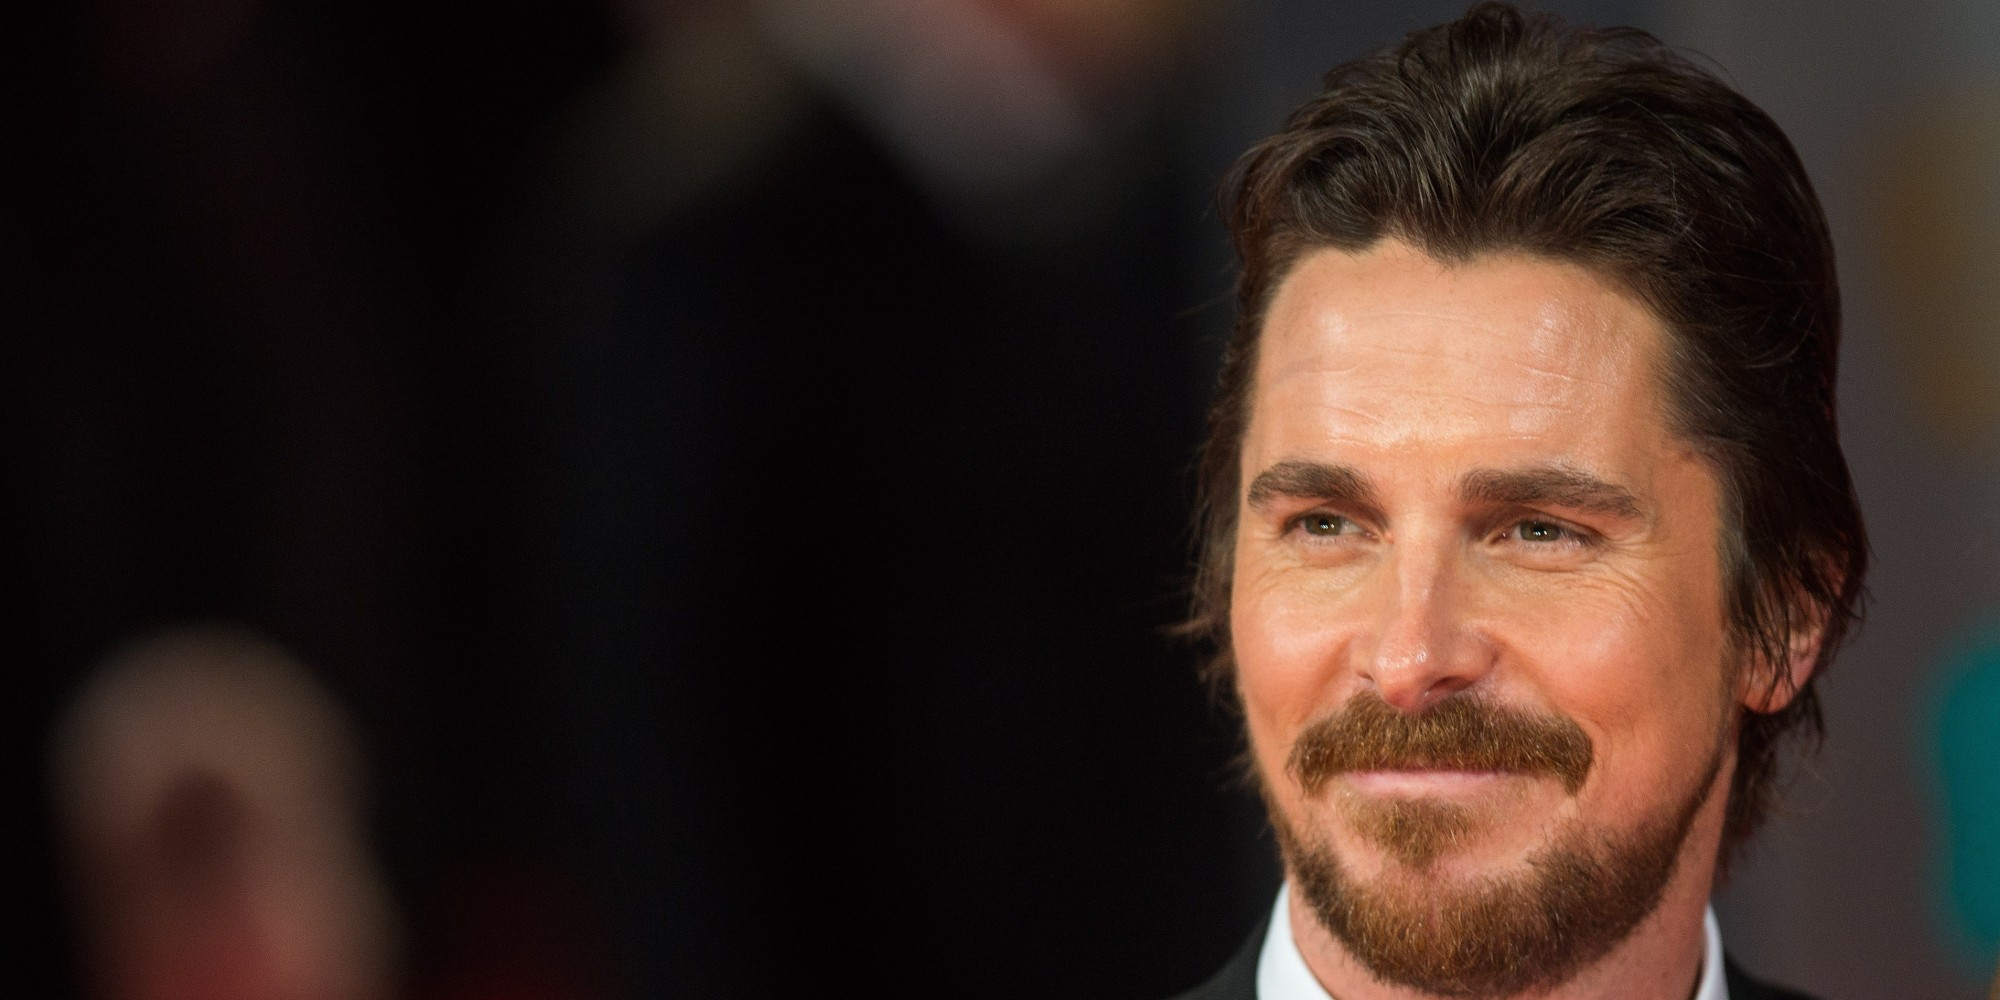 How A Typo Caused Christian Bale To Lose 60 Pounds